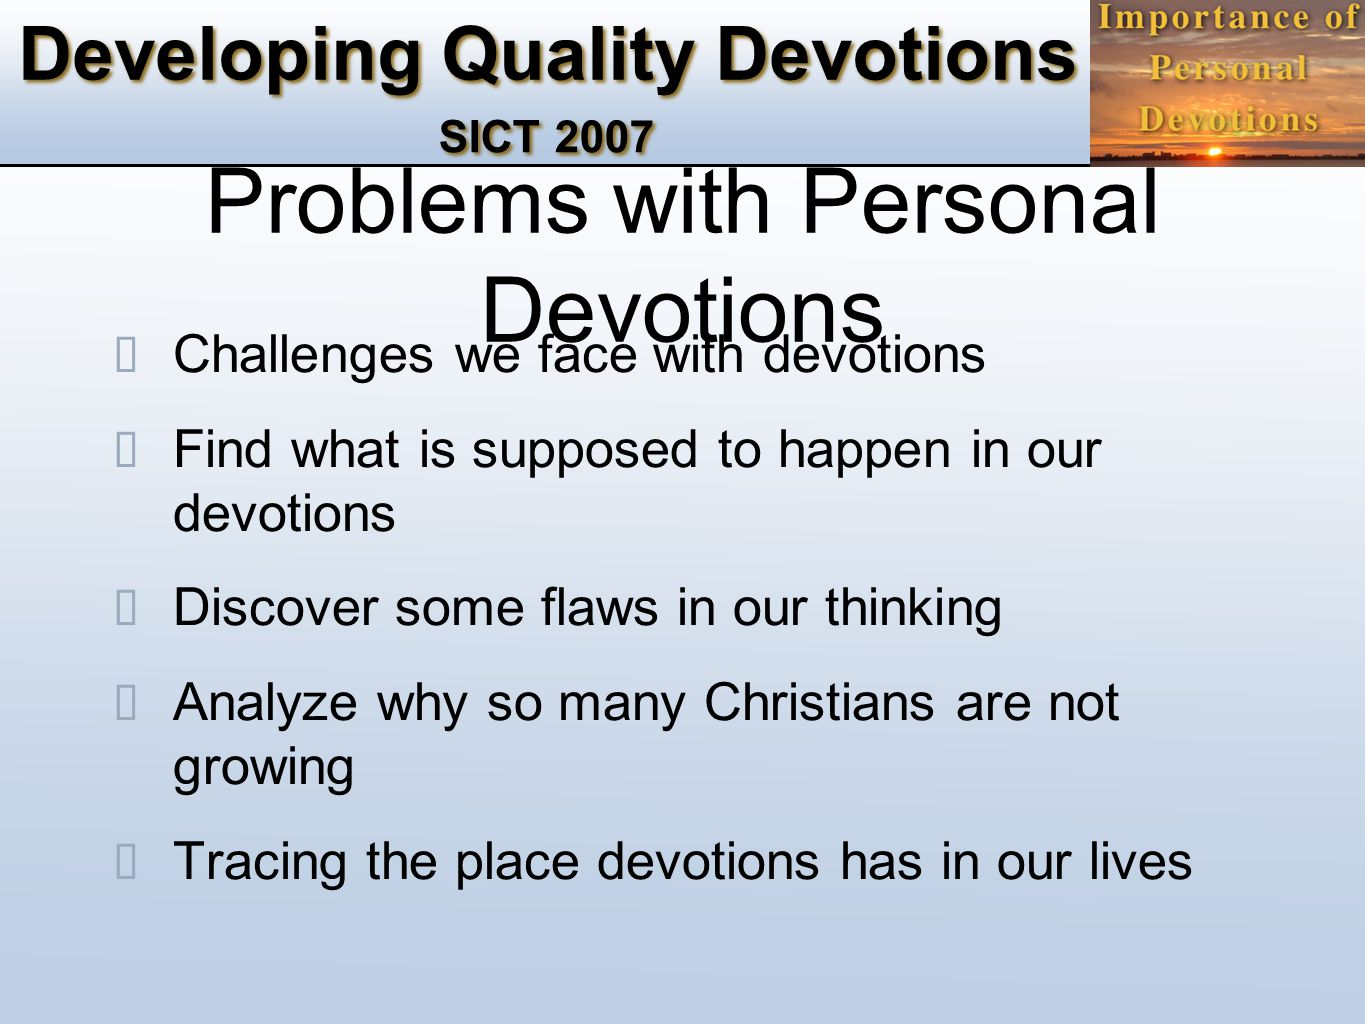 Developing Quality Devotions SICT 2007 Problems with Personal Devotions ✴ Challenges we face with devotions ✴ Find what is supposed to happen in our devotions ✴ Discover some flaws in our thinking ✴ Analyze why so many Christians are not growing ✴ Tracing the place devotions has in our lives